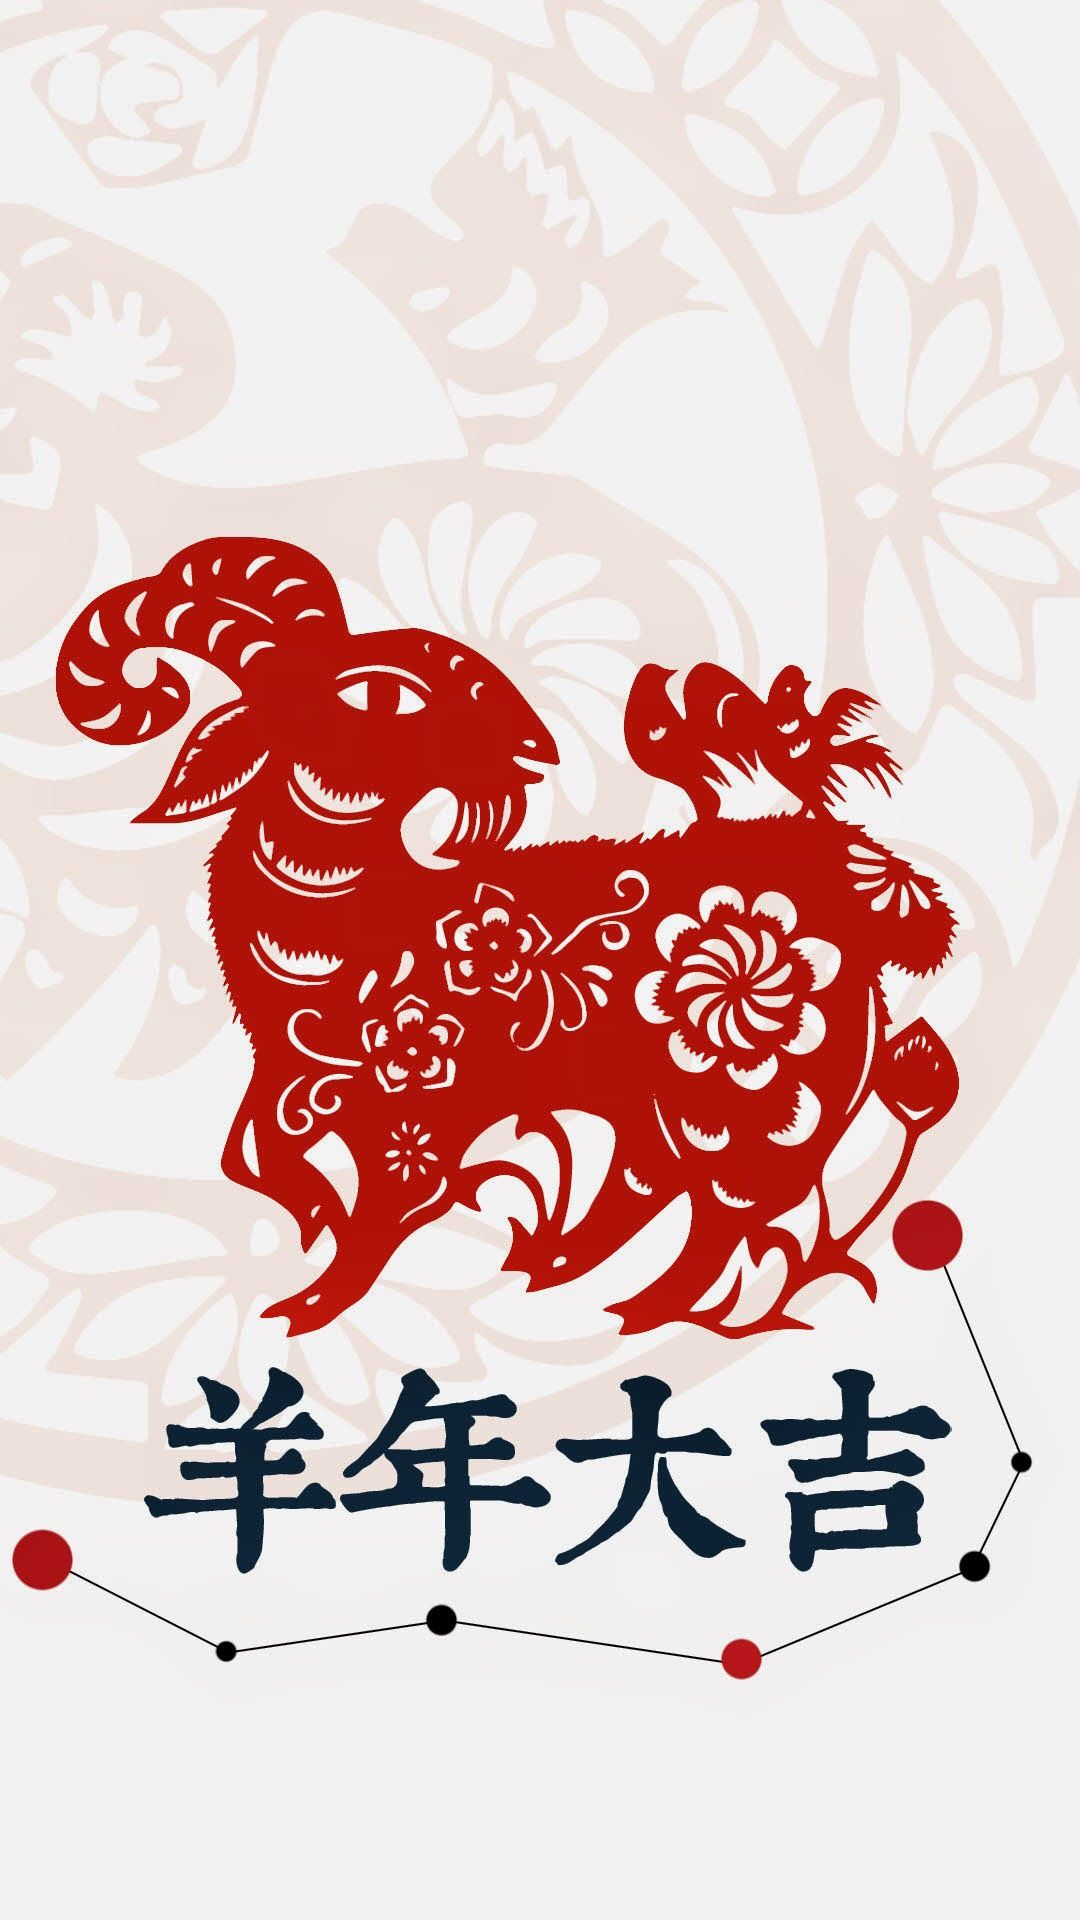 the year of goat tap image for more iphone chinese lunar new year wallpaper mobile9 wallpapers for iphone 55s iphone 6 6 plus red asian